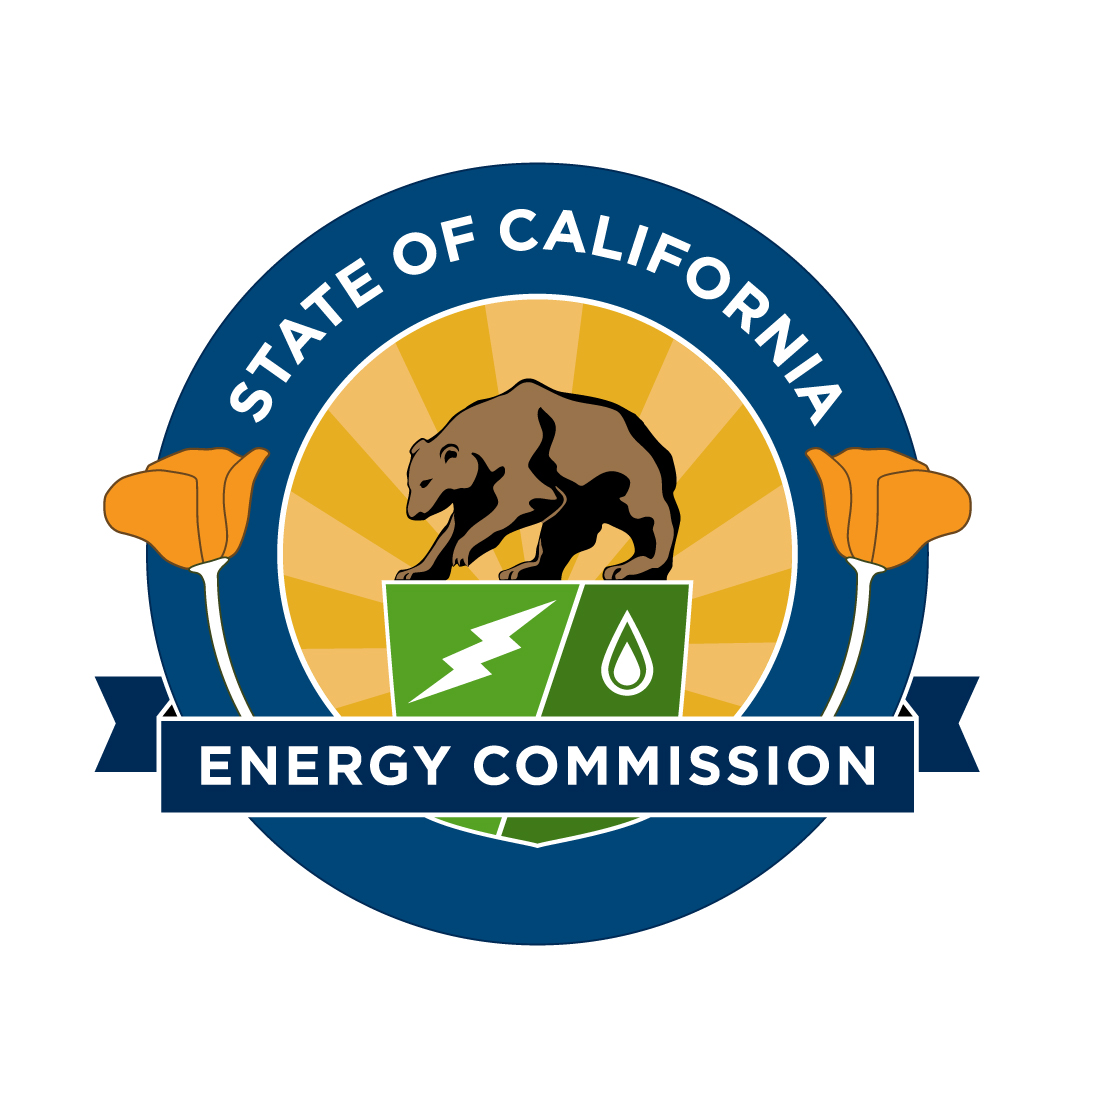 California Mandates Solar Panels for New Homes by 2020